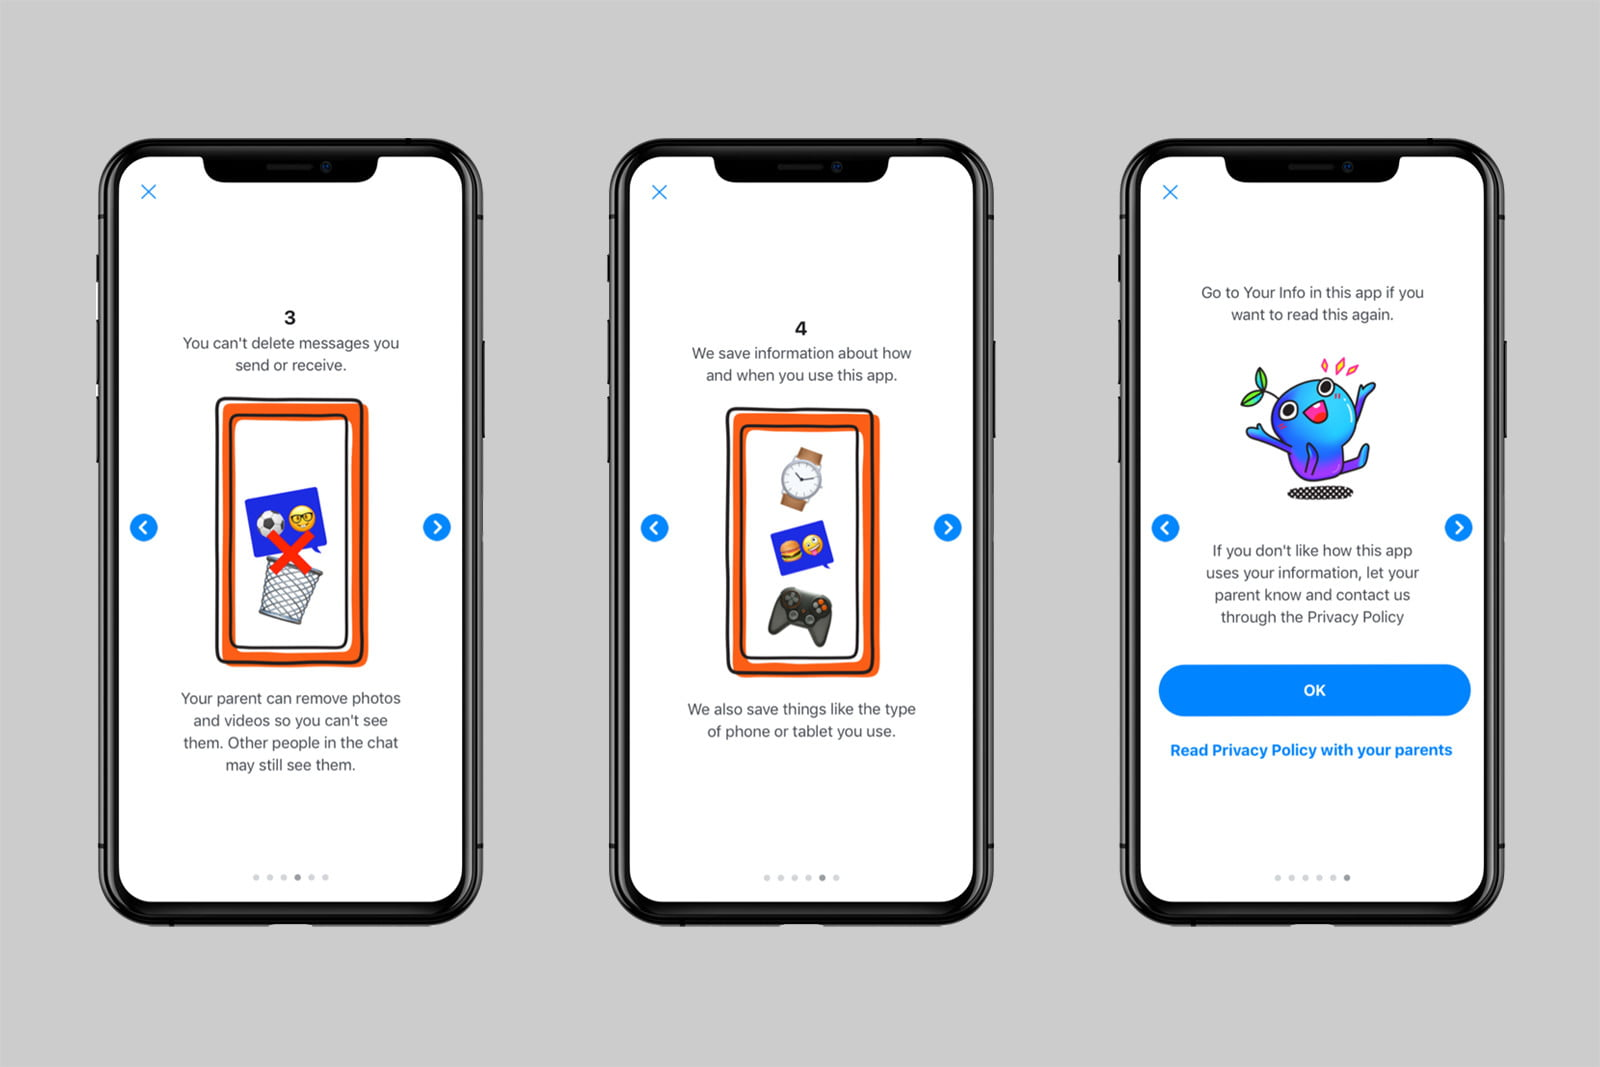 facebook messenger kids privacy education how your info is used 2